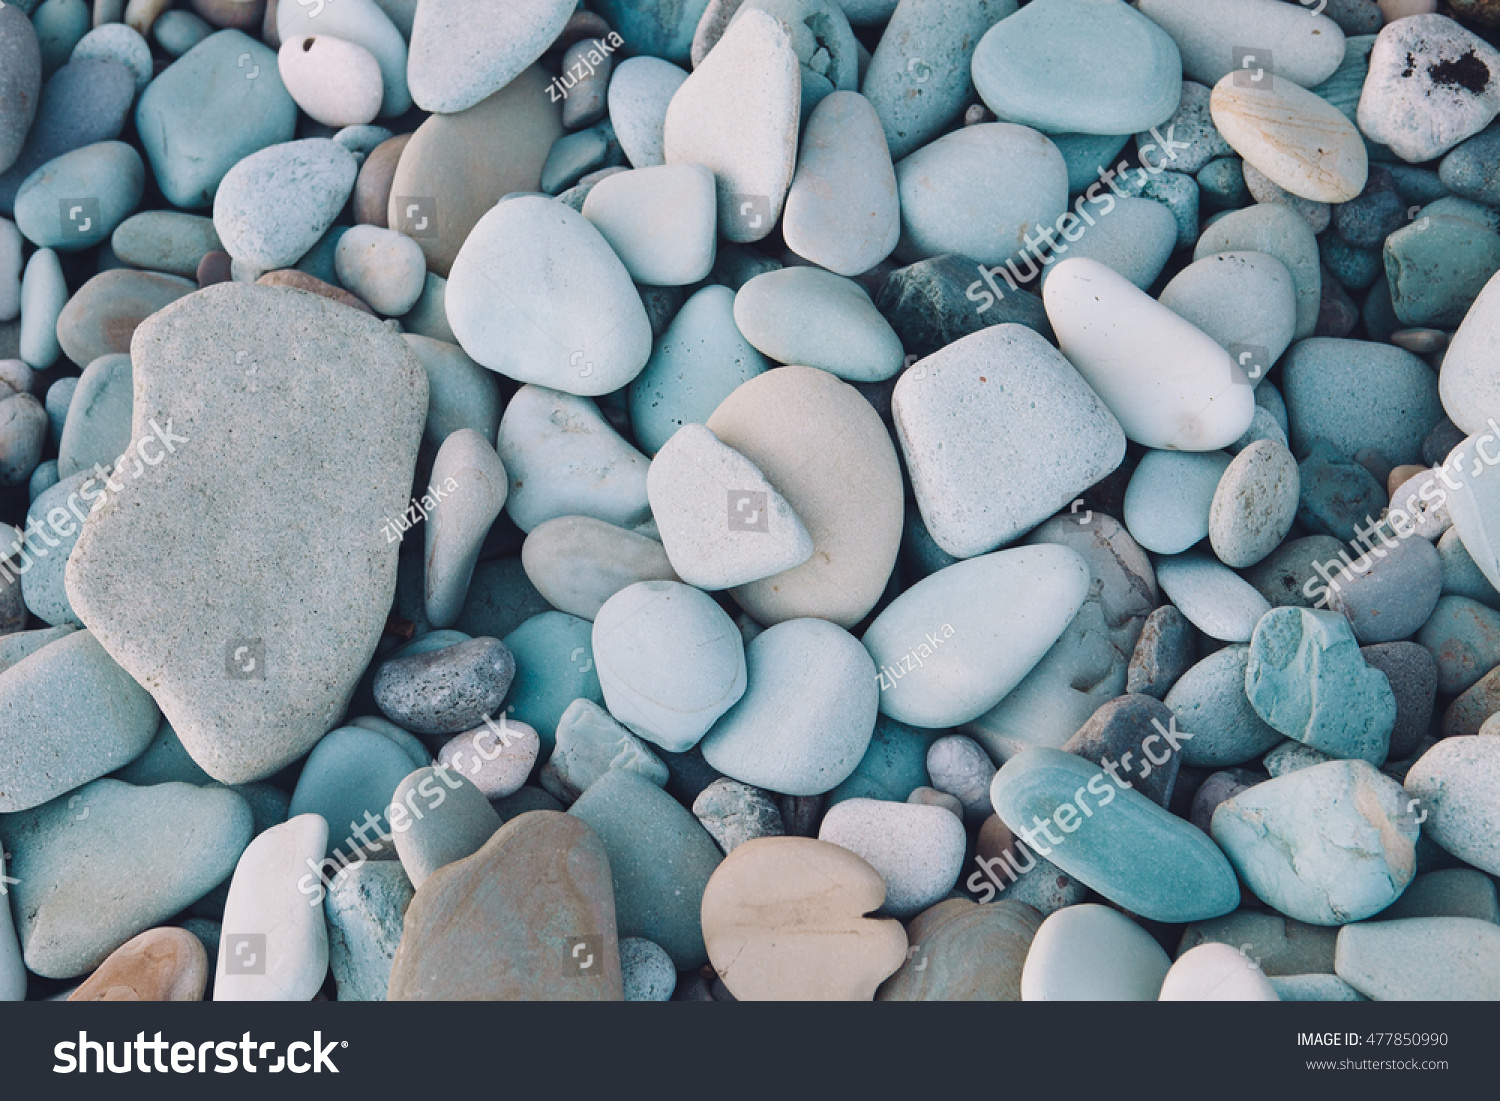 Smooth shaped white stones surface texture background stock photo - Background Texture Of Blue Stones Island Landscape Blue Stone Beach In Flores Indonesia